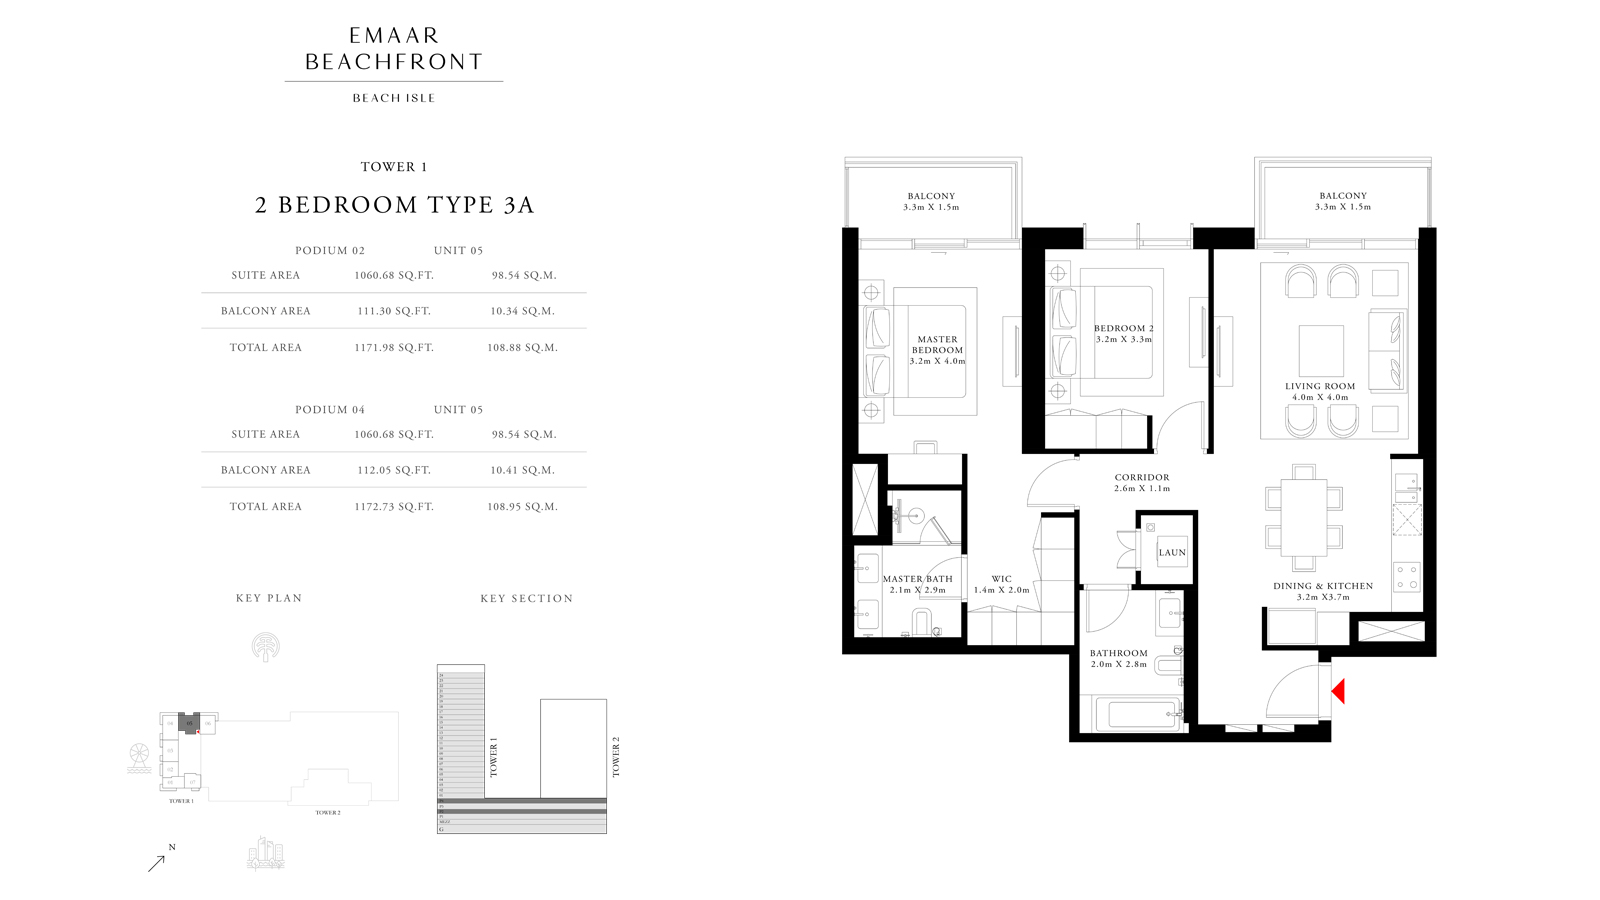 2 Bedroom Type 3A Tower 1, Size 1172 sq ft